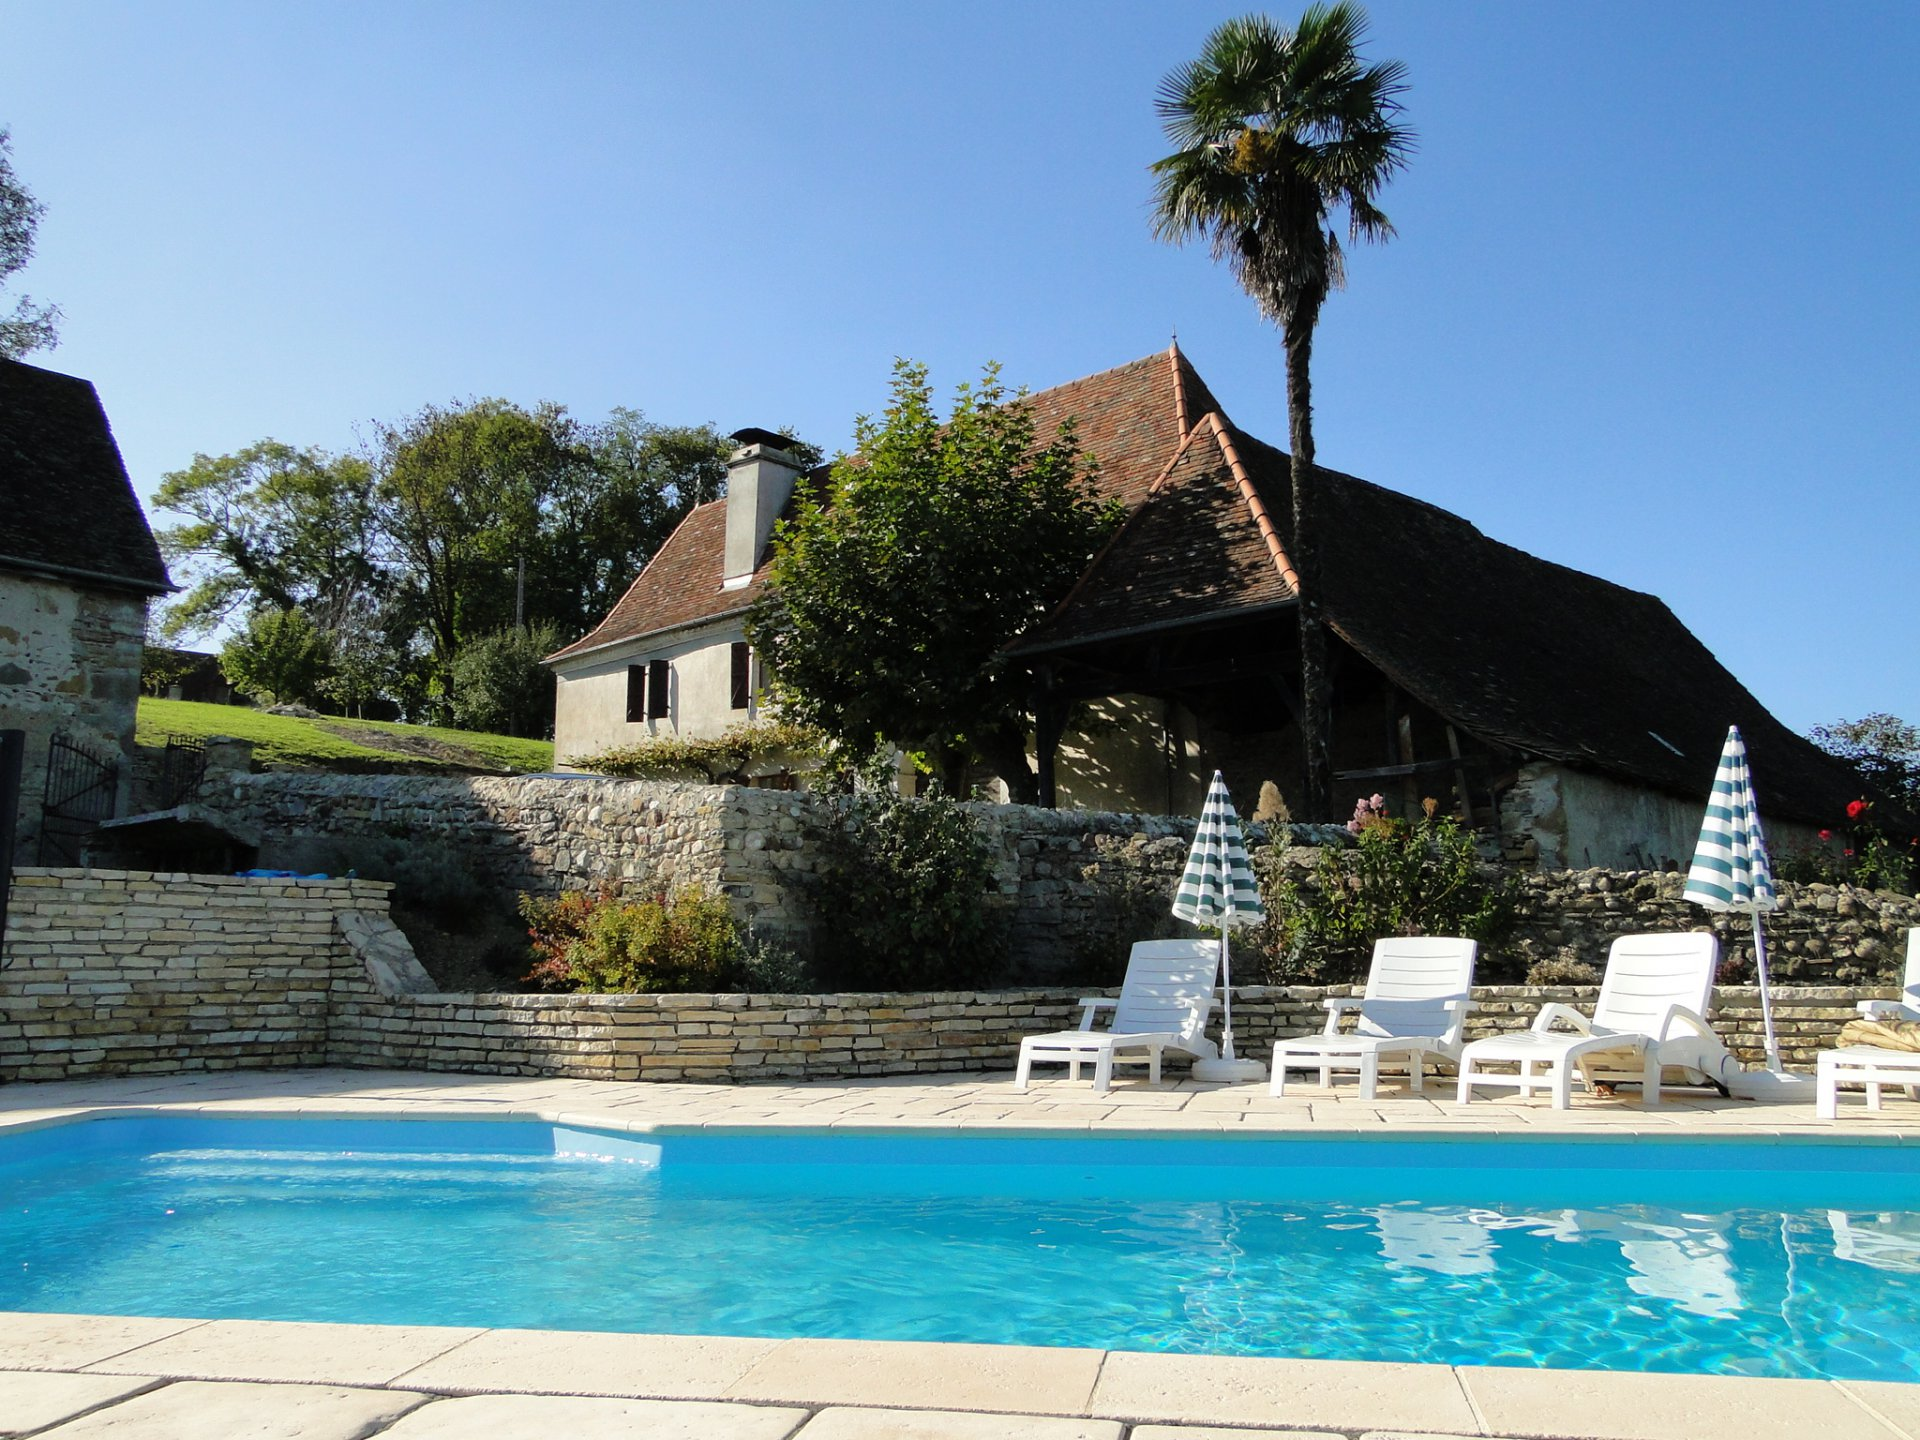 Near NAVARRENX - Beautiful renovated farm with barns and pool, nestled in the bearnaise hills.